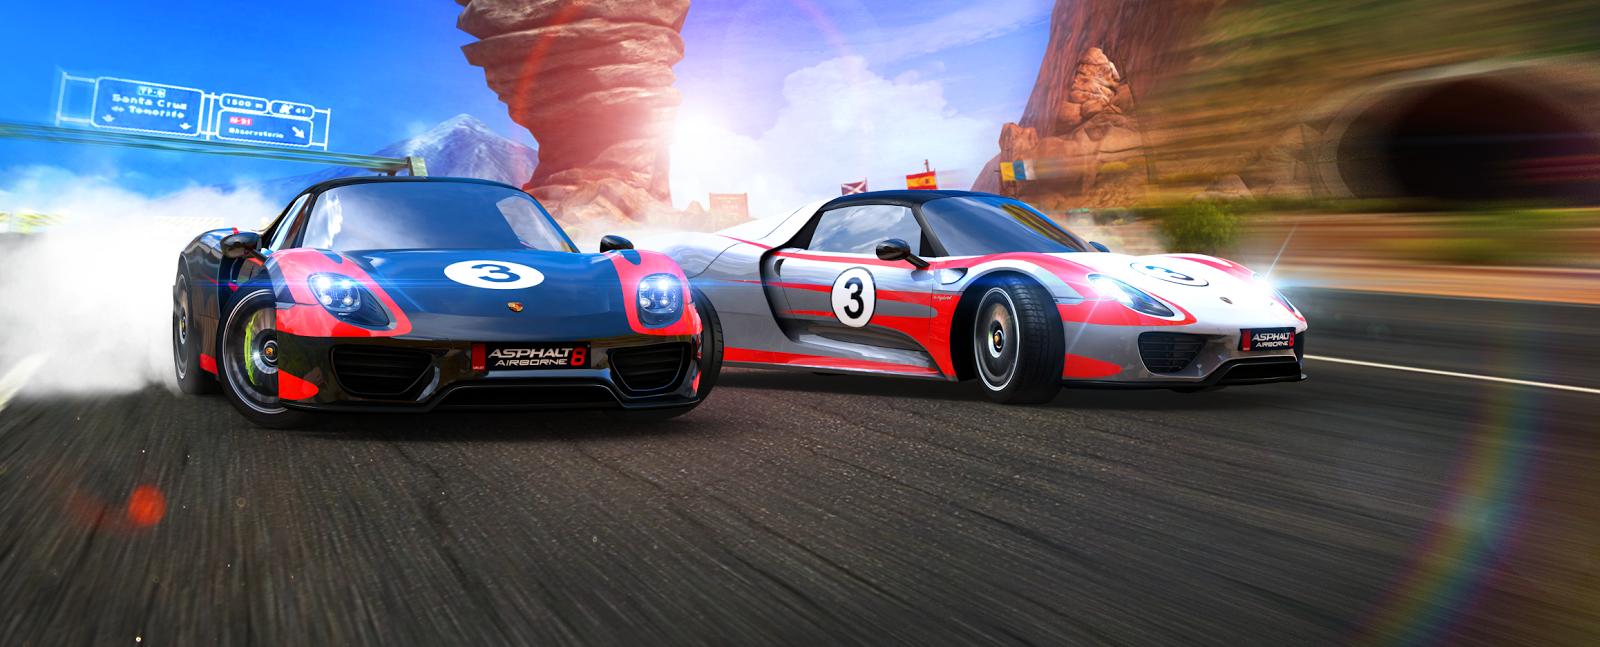 porsche en force dans asphalt 8 airborne le mag jeux high tech. Black Bedroom Furniture Sets. Home Design Ideas